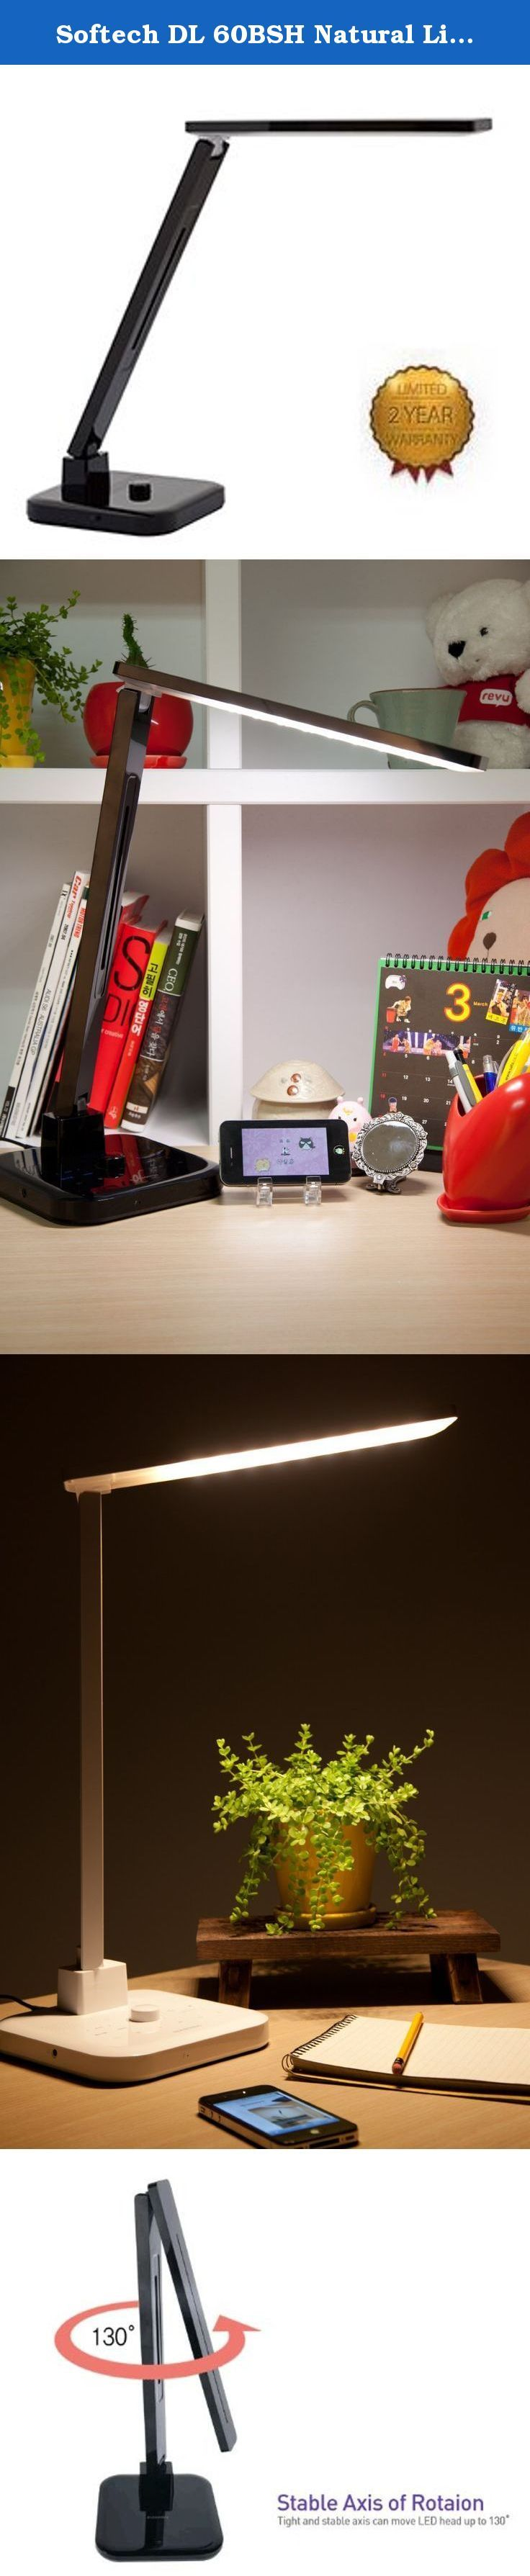 Softech DL 60BSH Natural Light Smart LED Desk Lamp with Bluetooth Speaker and FM Radio, 18.3 by 8 by 3.5-Inch, Black. This LED desk lamps feature environmentally friendly lighting that eases eye strain while being brighter and lasting longer than traditional lamps.